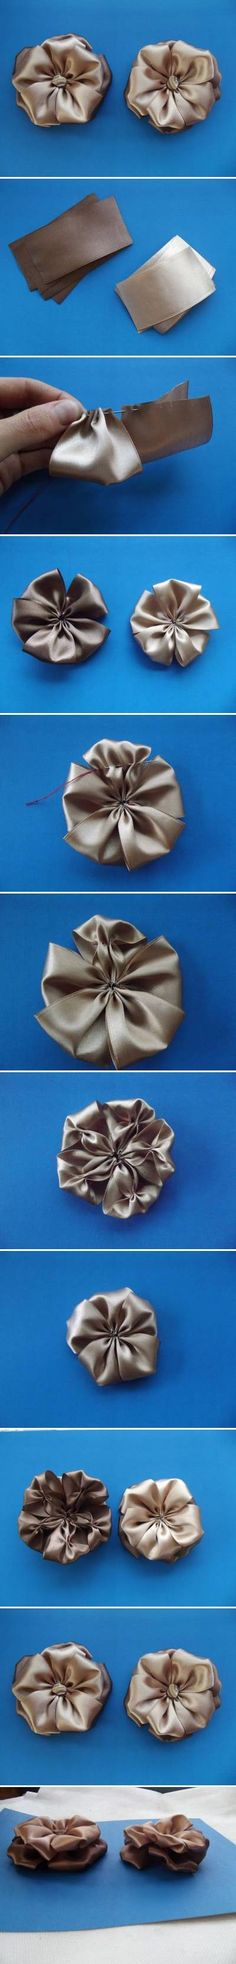 How to make Original Bow step by step DIY tutorial instructions How to make Original Bow step by step DIY tutorial instructions